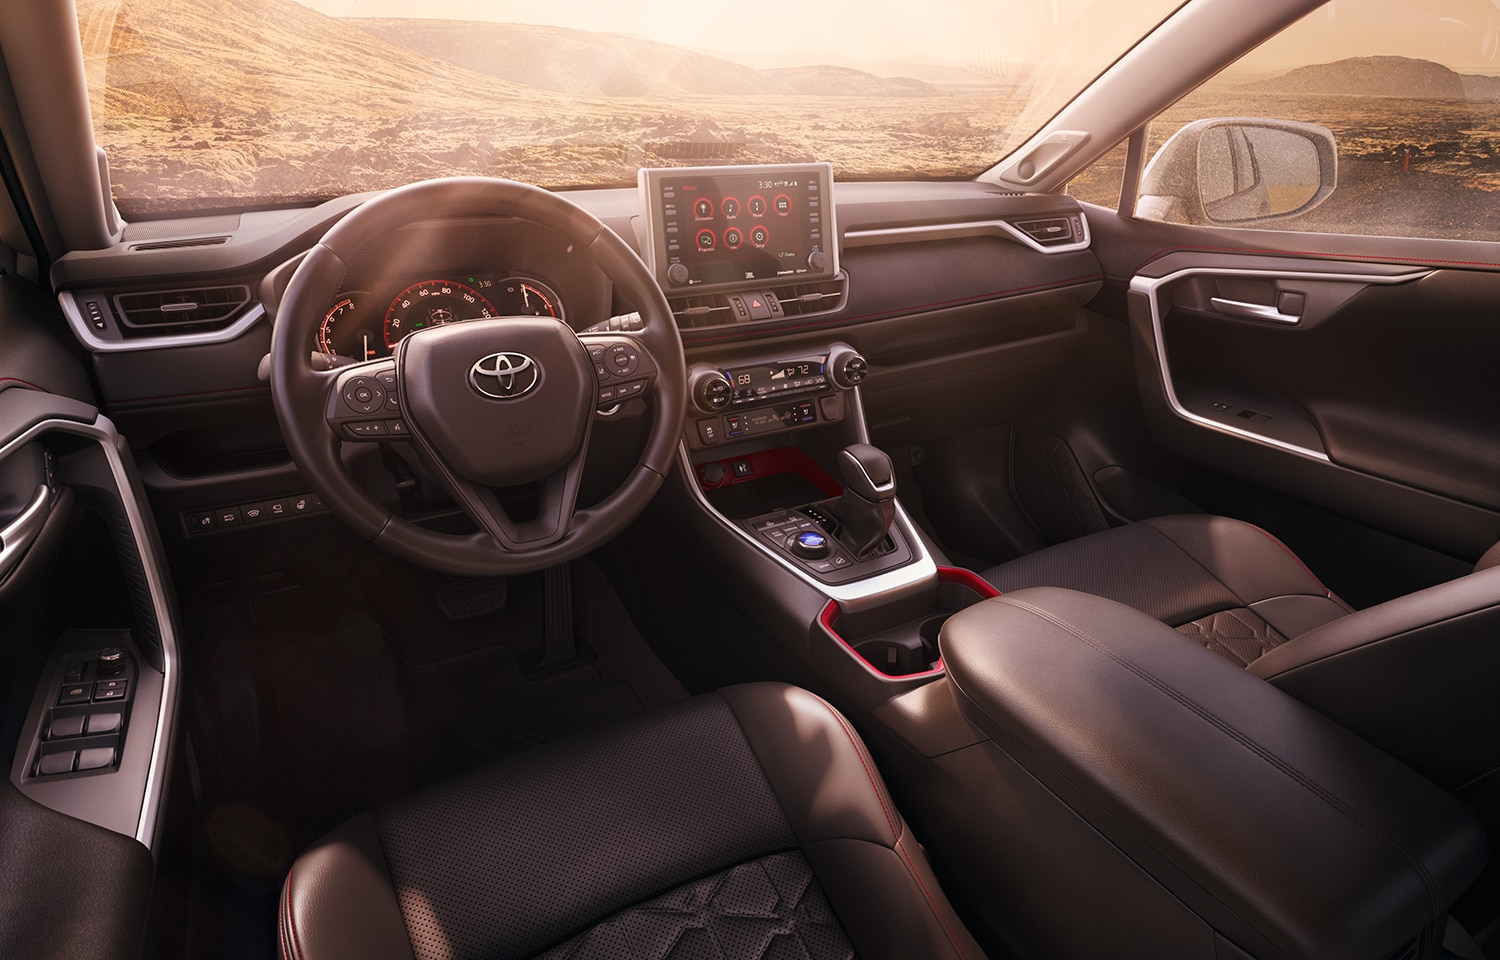 Performance features of the 2020 Toyota RAV4 at Johnstons Toyota | The interior of the 2020 RAV4